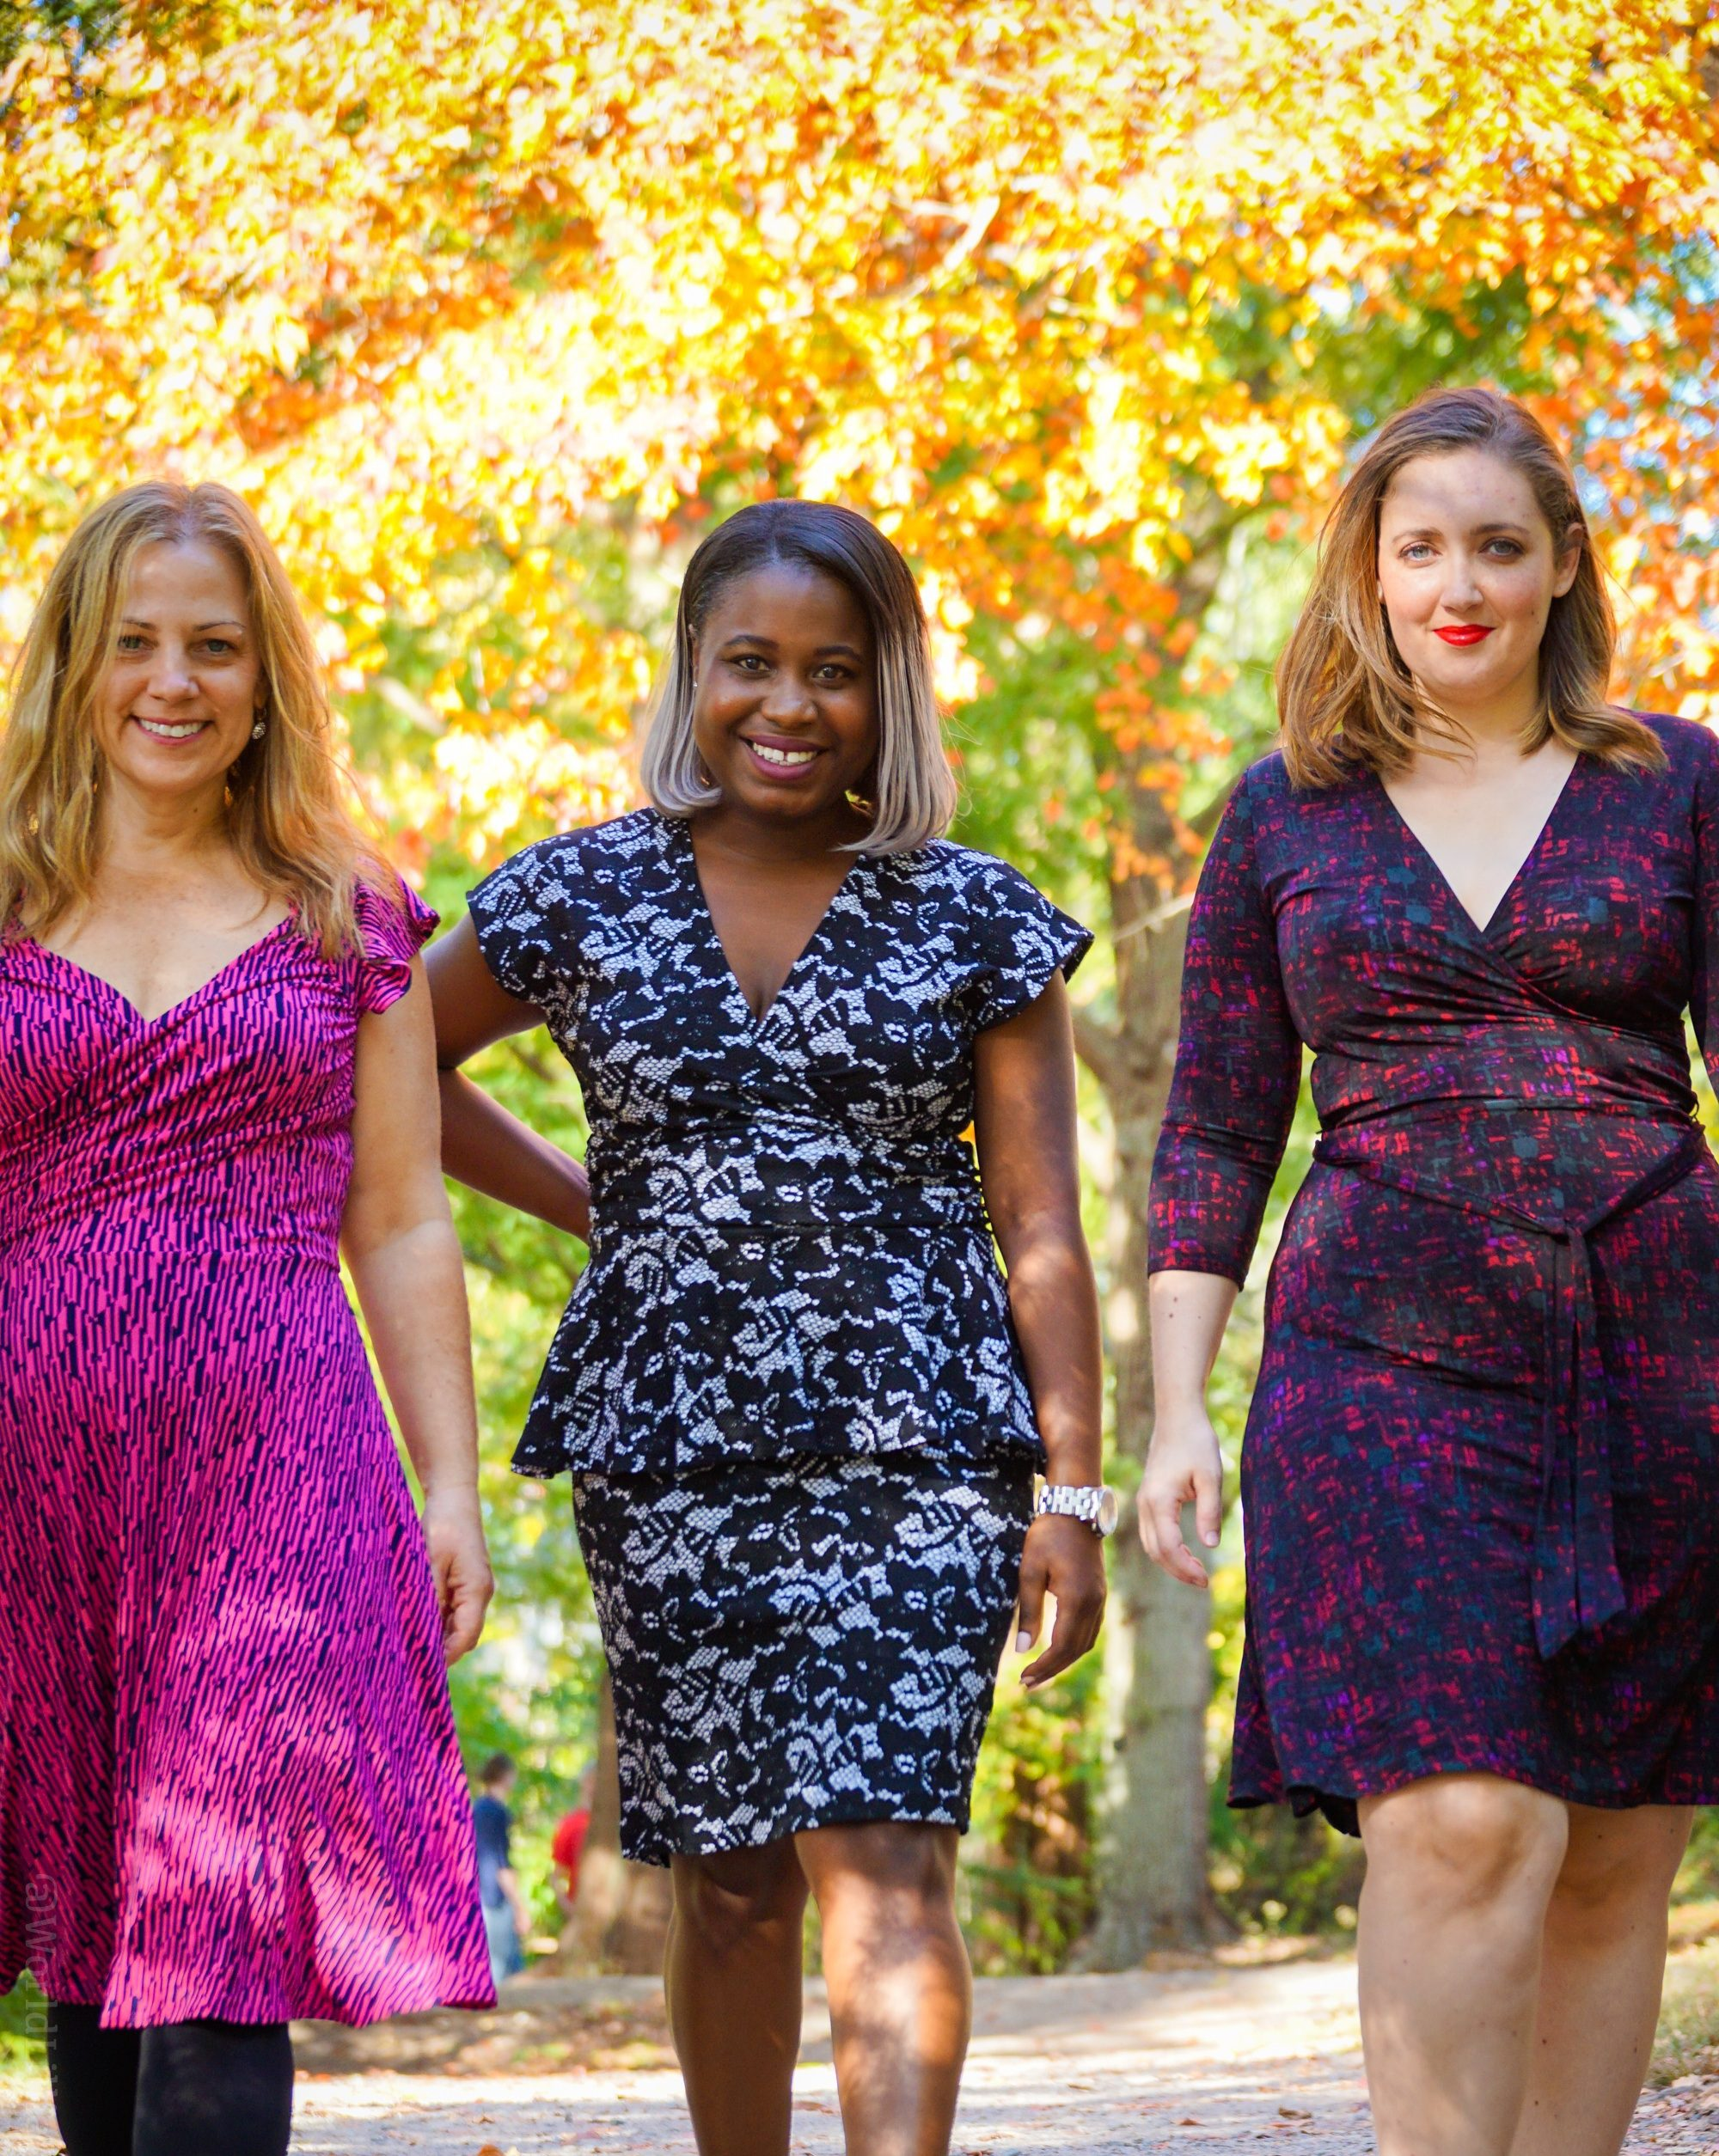 Dresses for Travel, Work, AND Nights Out: Versatile Outfits That are Both Cute and Comfortable!